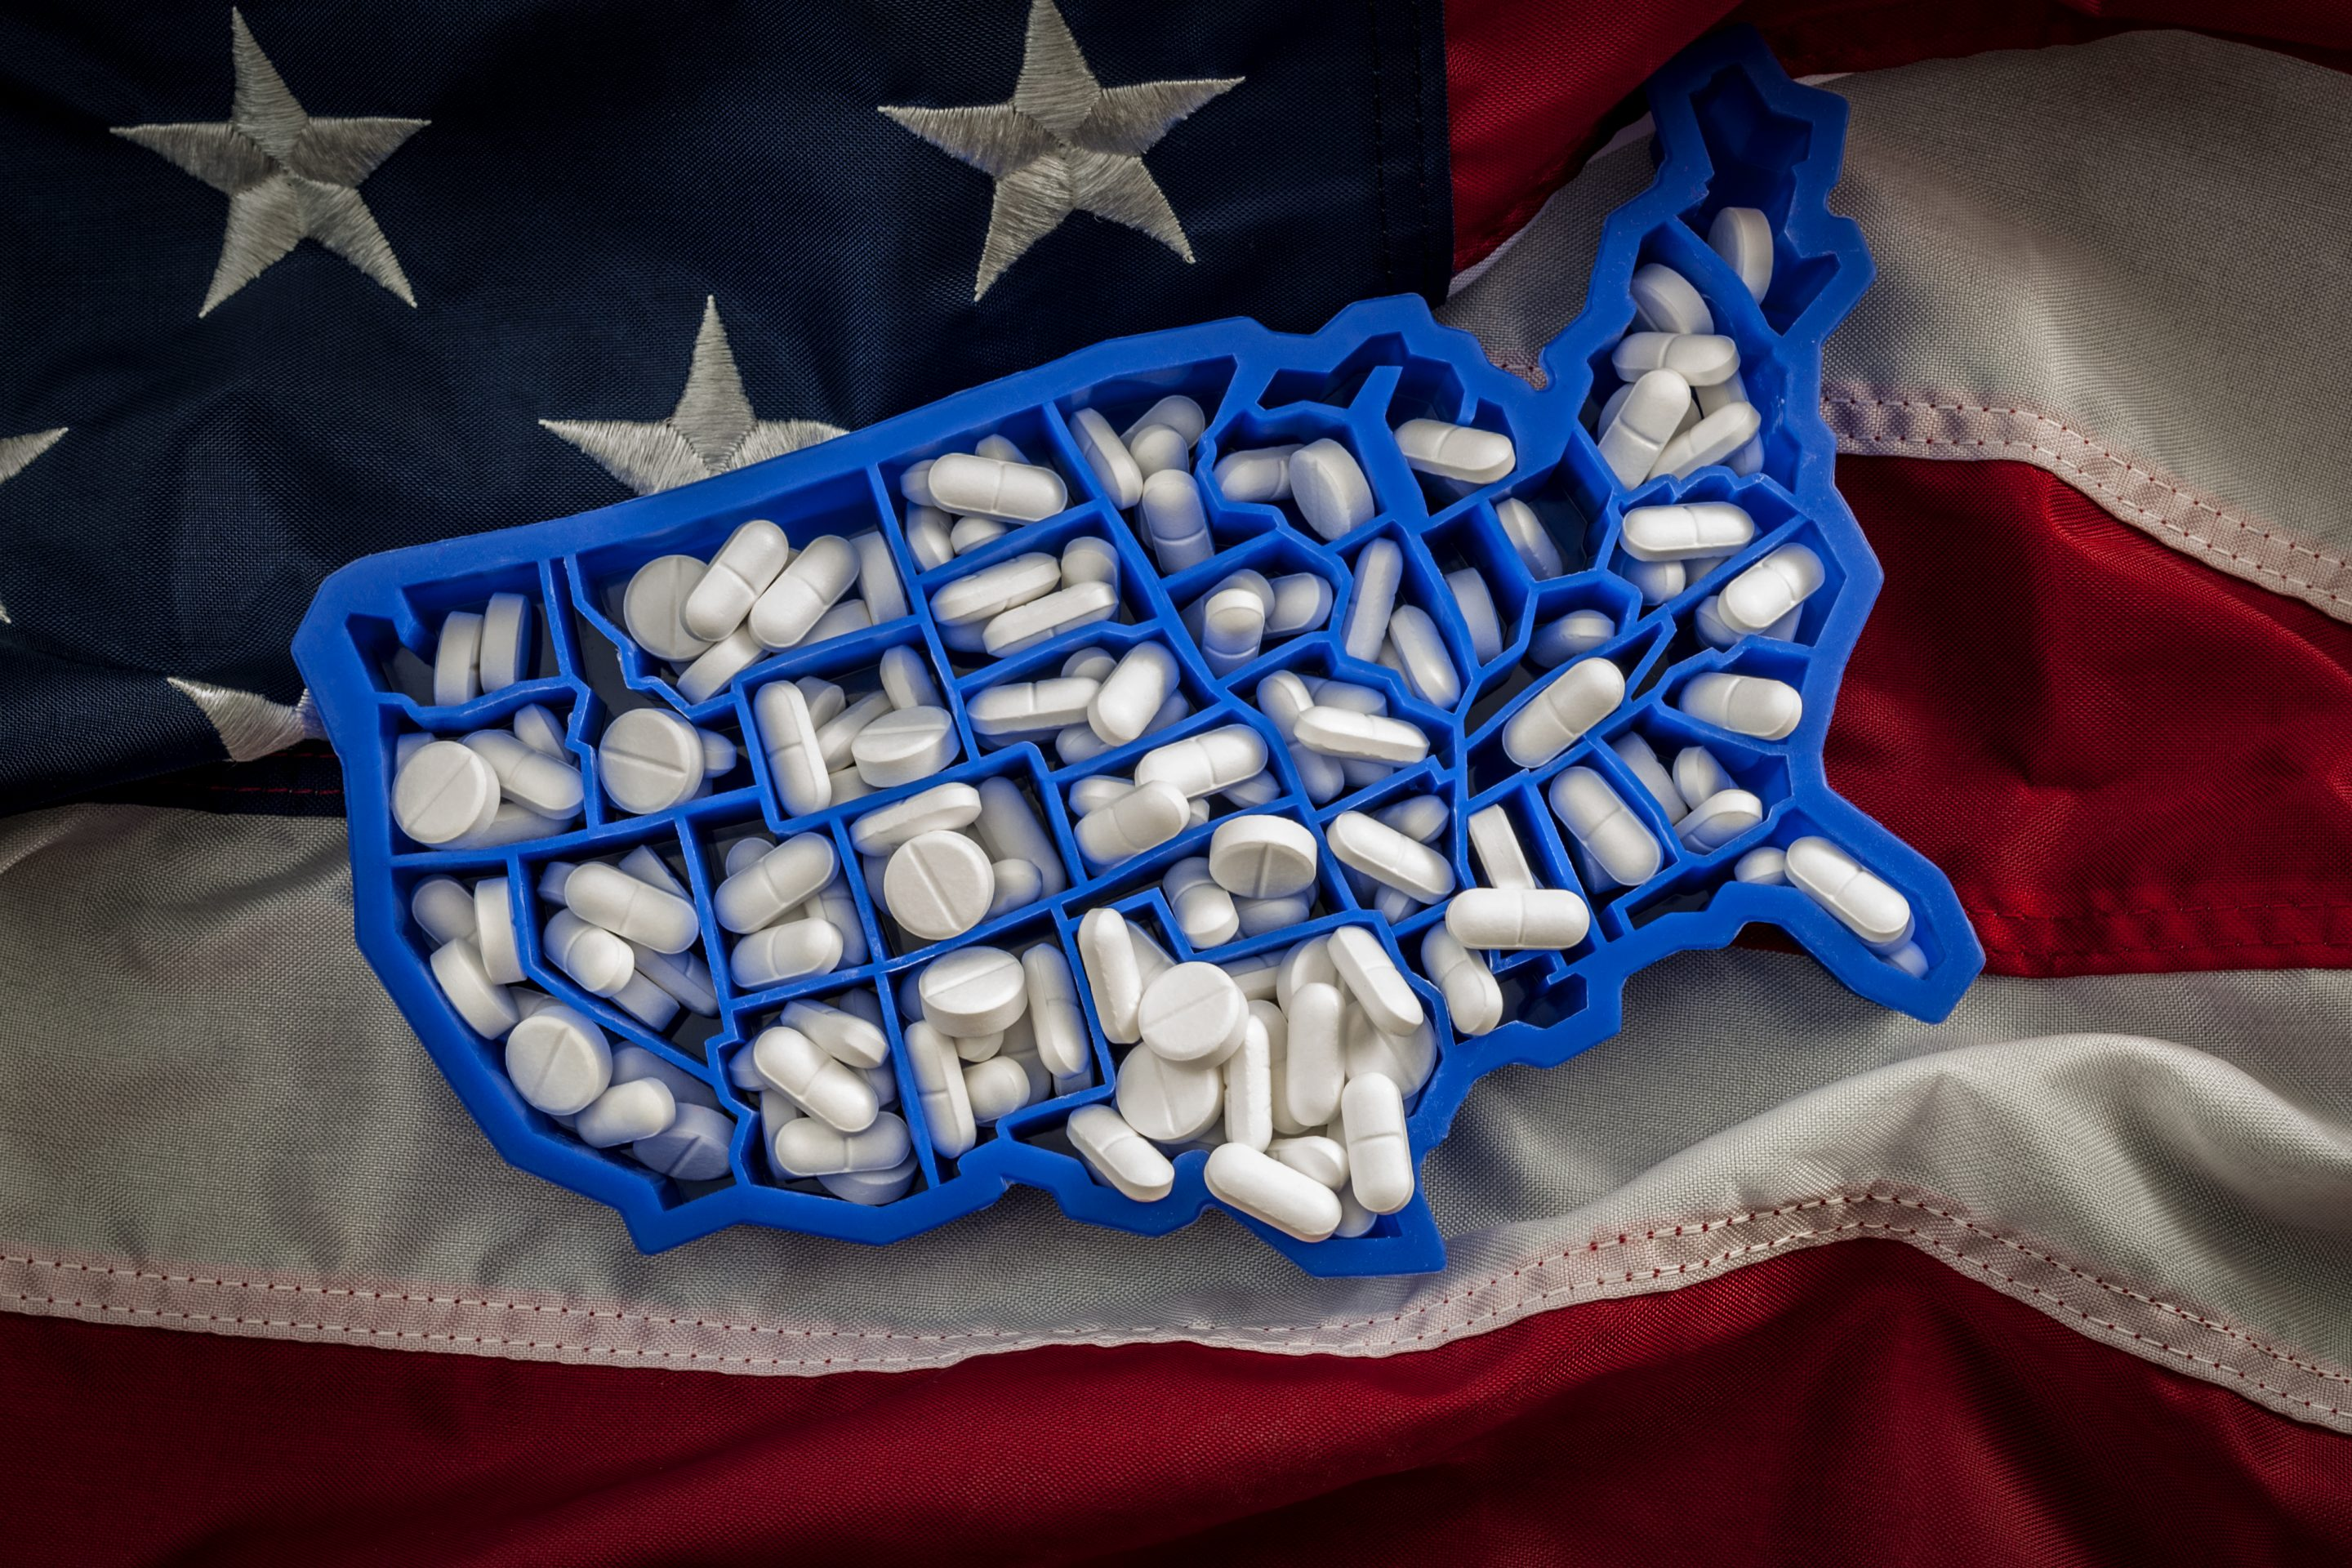 American map covered with opioid painkillers like oxycodone and hydrocodone